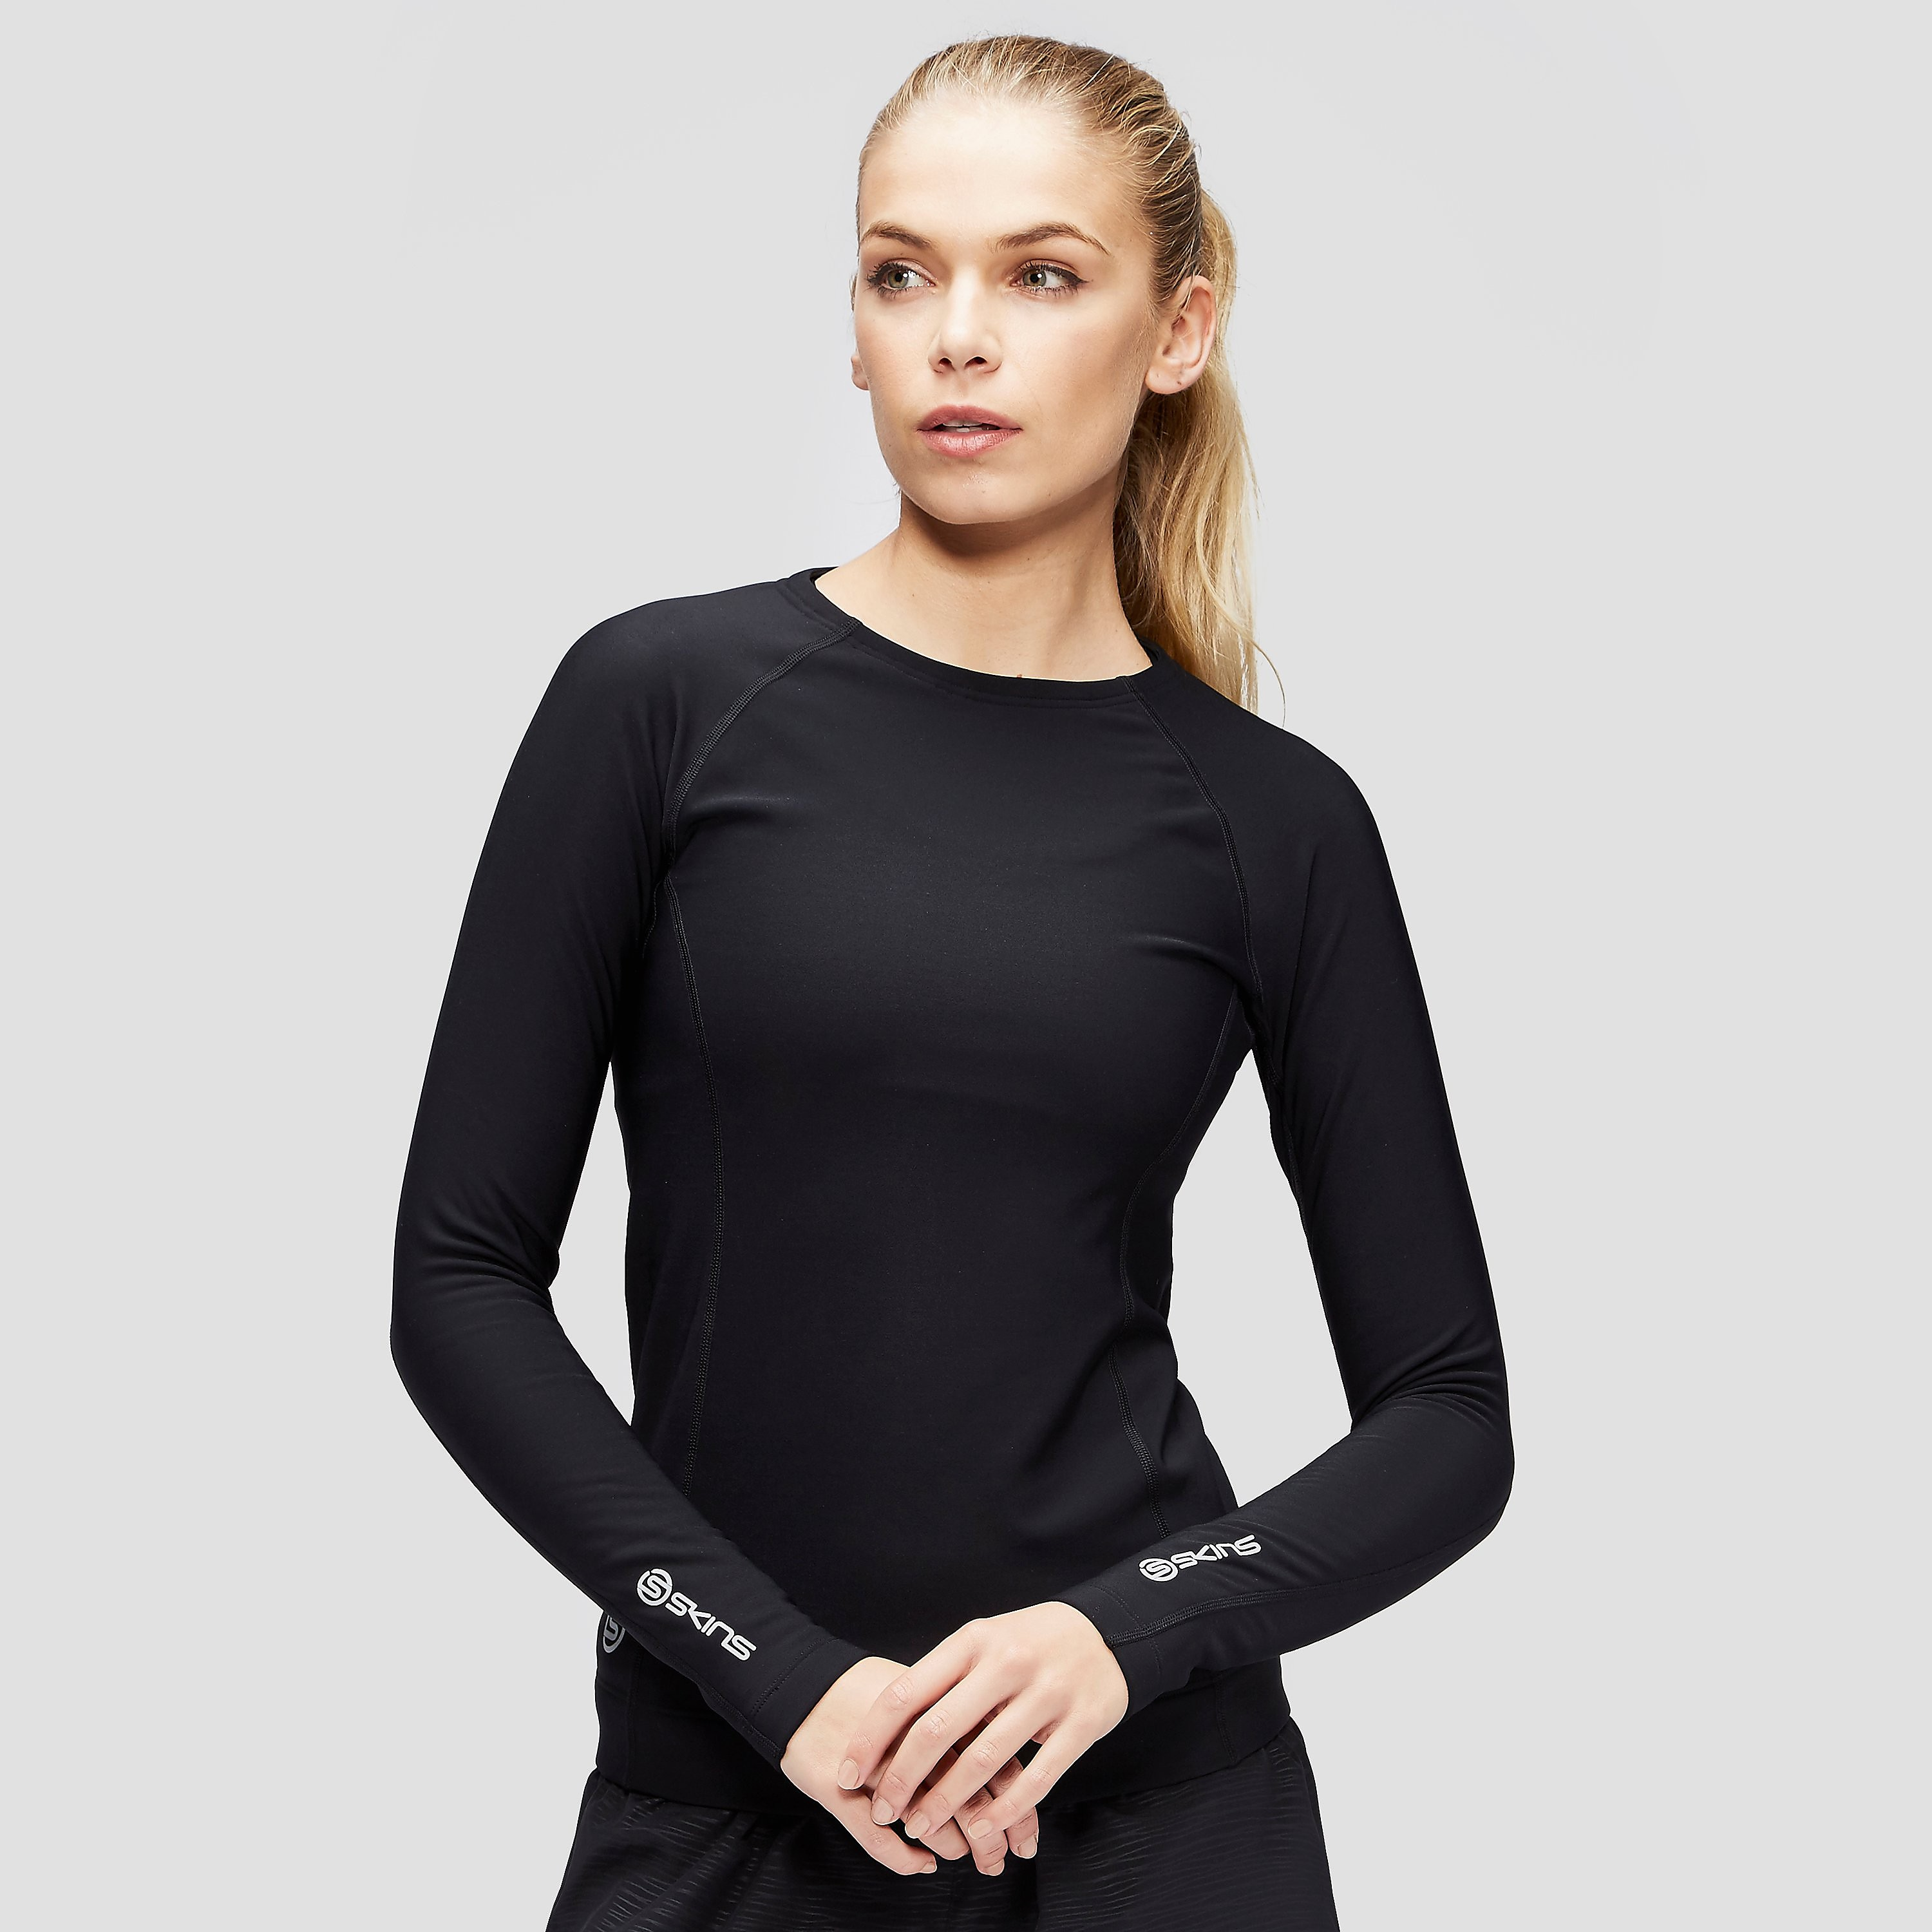 Skins A200 Thermal Long Sleeve Top